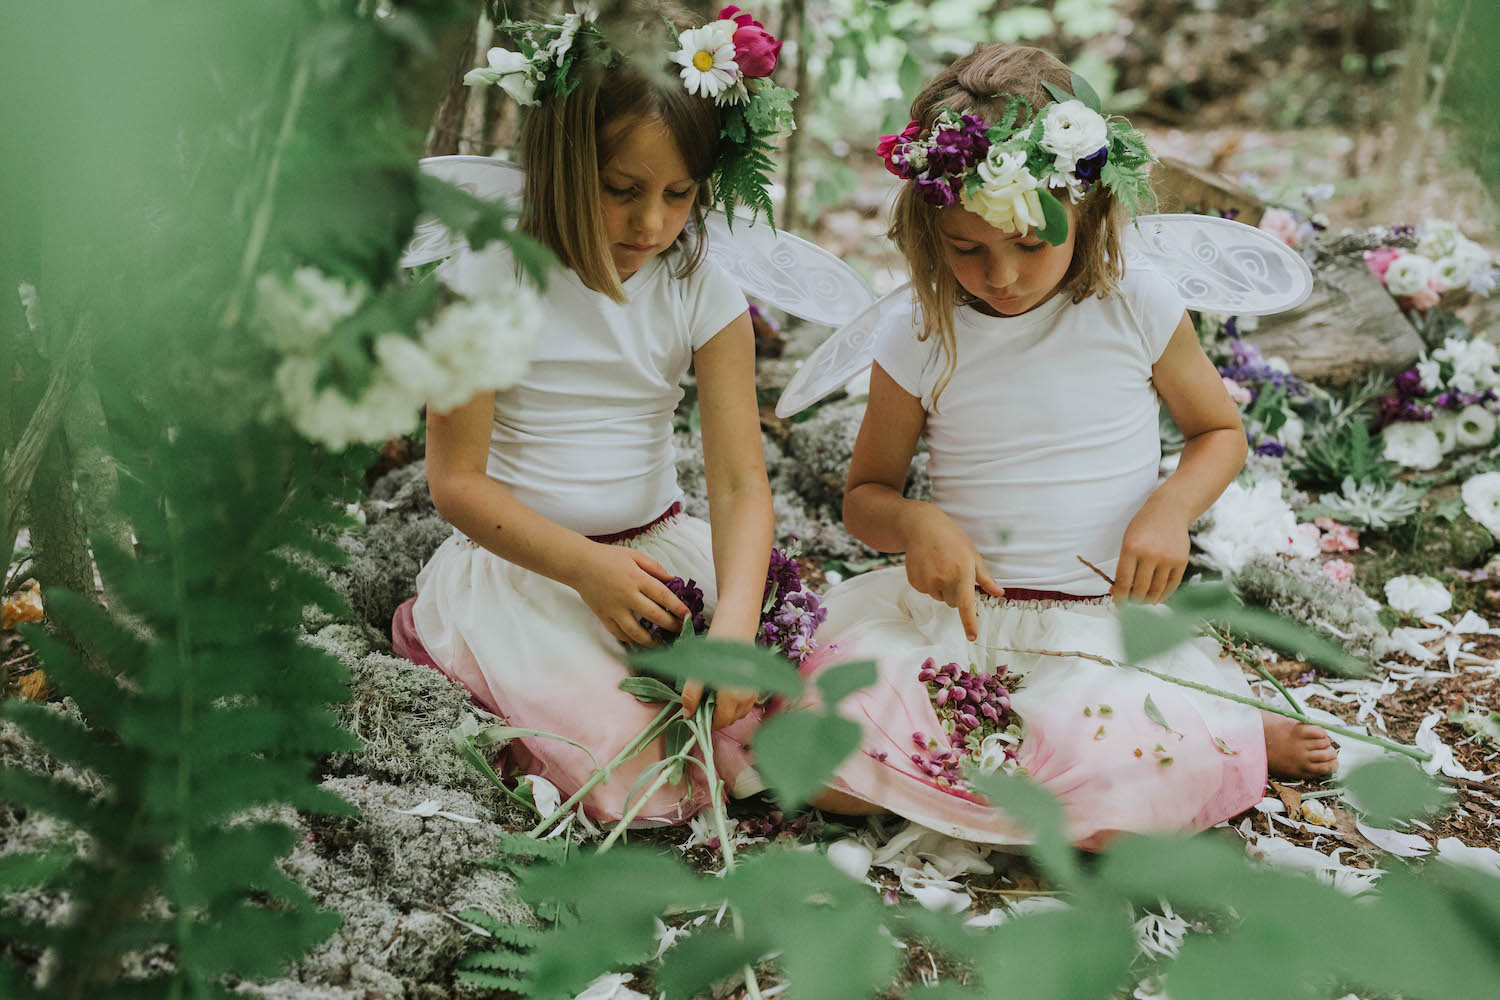 Woodland Fairy Birthday Party Inspiration - let the girls frolic in the woods in search of fairies and ferns. Pretty floral crowns are a must-have for a fairy themed birthday celebration. Photo by Amy Donohue Photography / Floral design by Birds of a Flower / as seen on Giggle Hearts www.gigglehearts.com